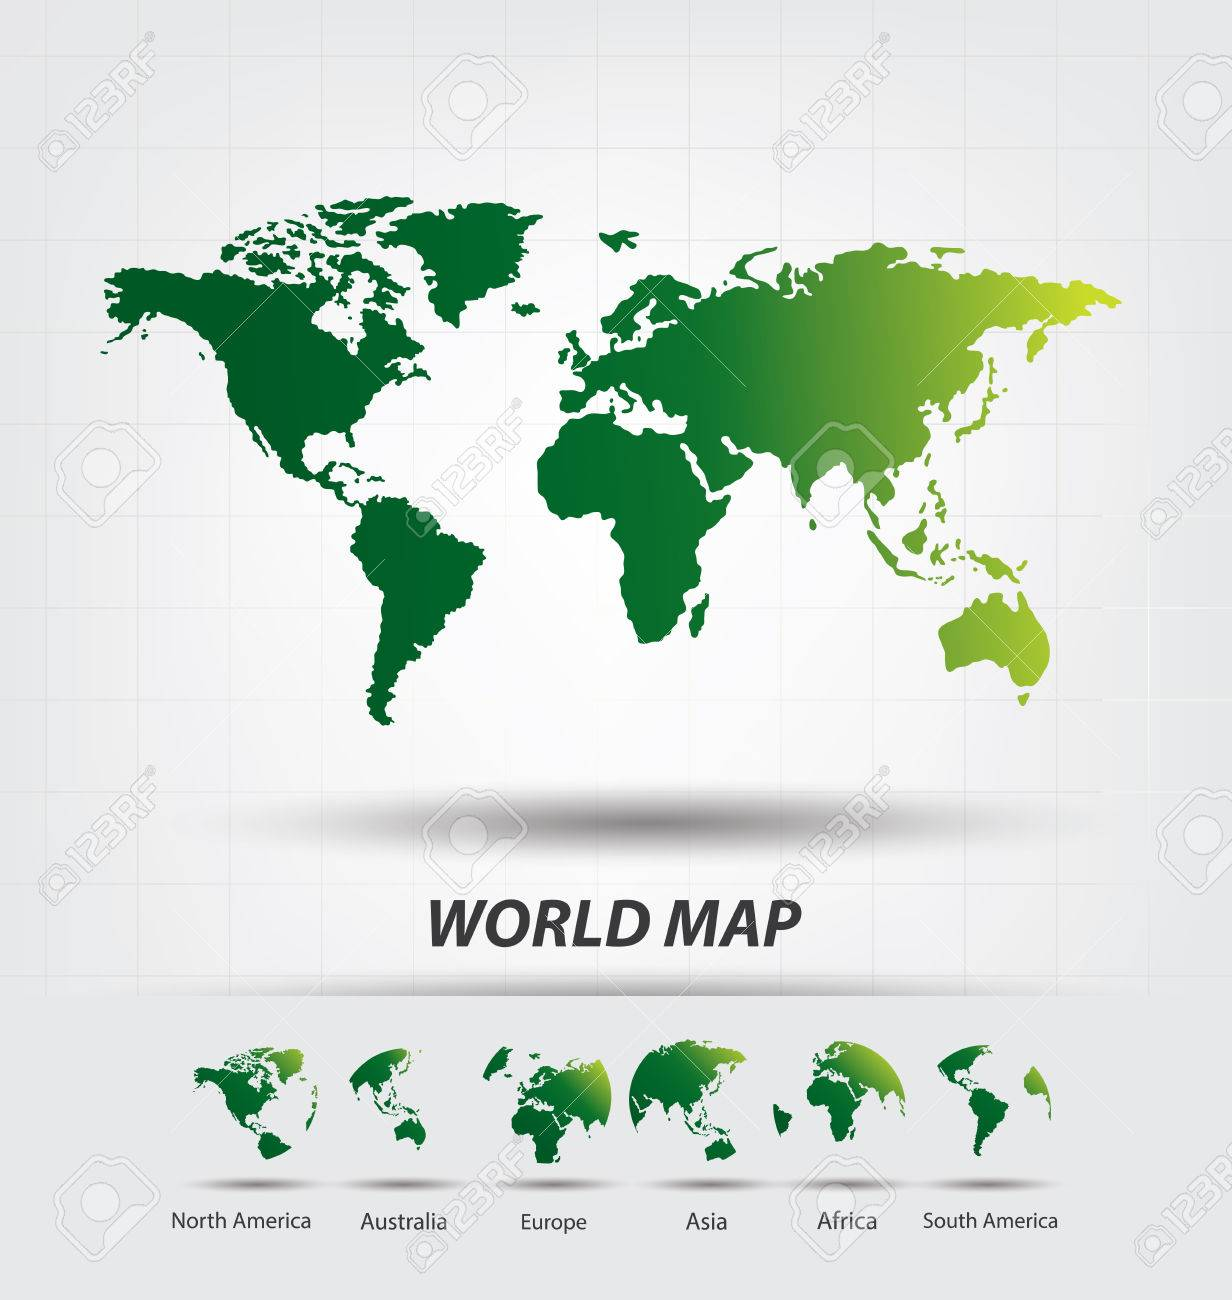 World map of america to australia world map showing bali world world map showing bali world map of dispersion of salsola world map of britain gumiabroncs Images